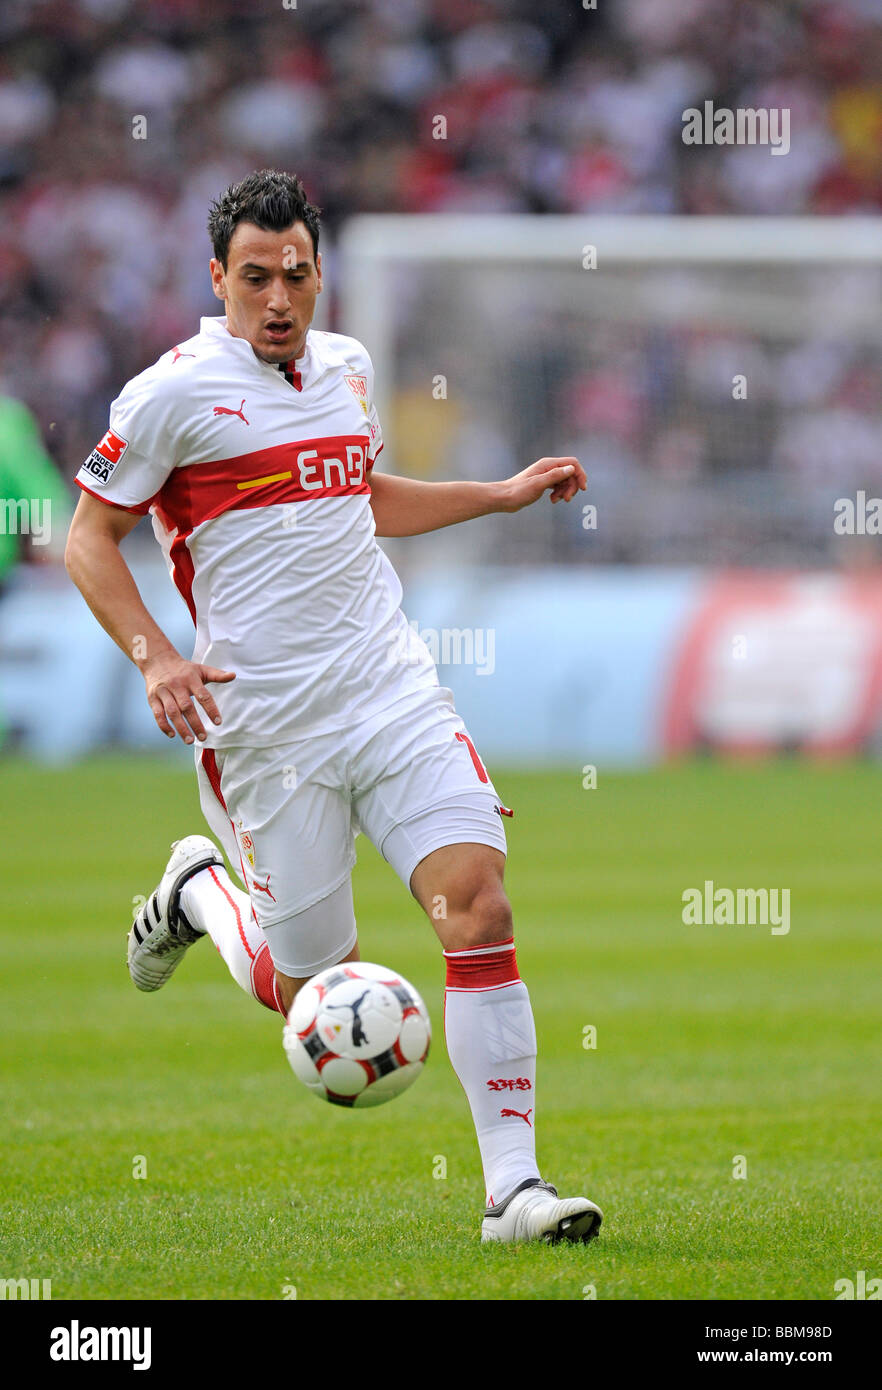 Timo Gebhart, German footballer playing for VfB Stuttgart, leading the ball - Stock Image